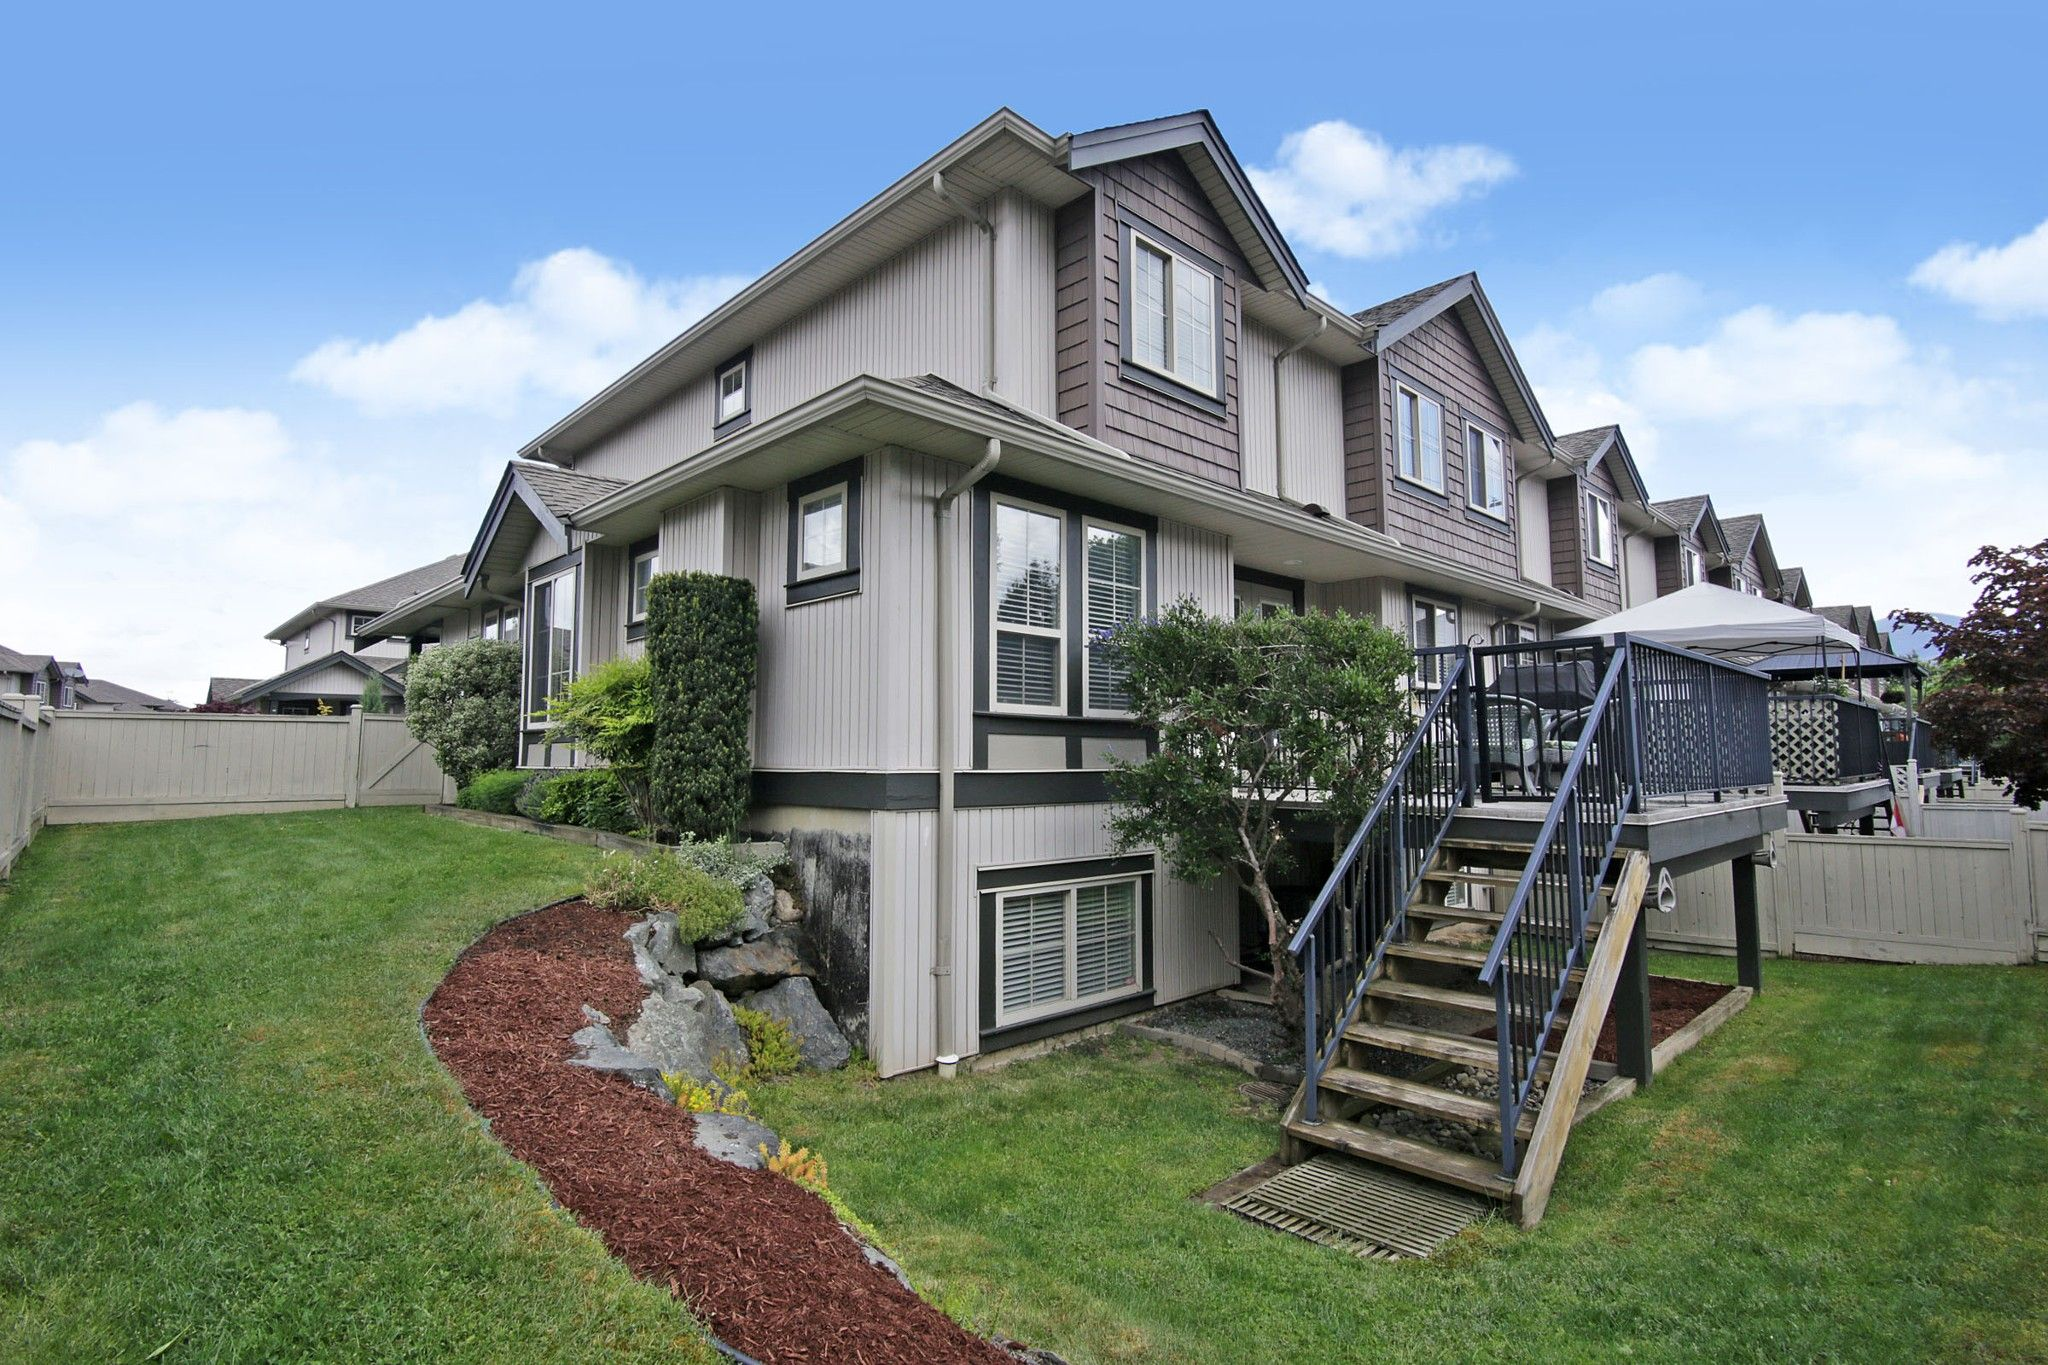 """Photo 24: Photos: 25 6450 BLACKWOOD Lane in Chilliwack: Sardis West Vedder Rd Townhouse for sale in """"THE MAPLES"""" (Sardis)  : MLS®# R2581381"""